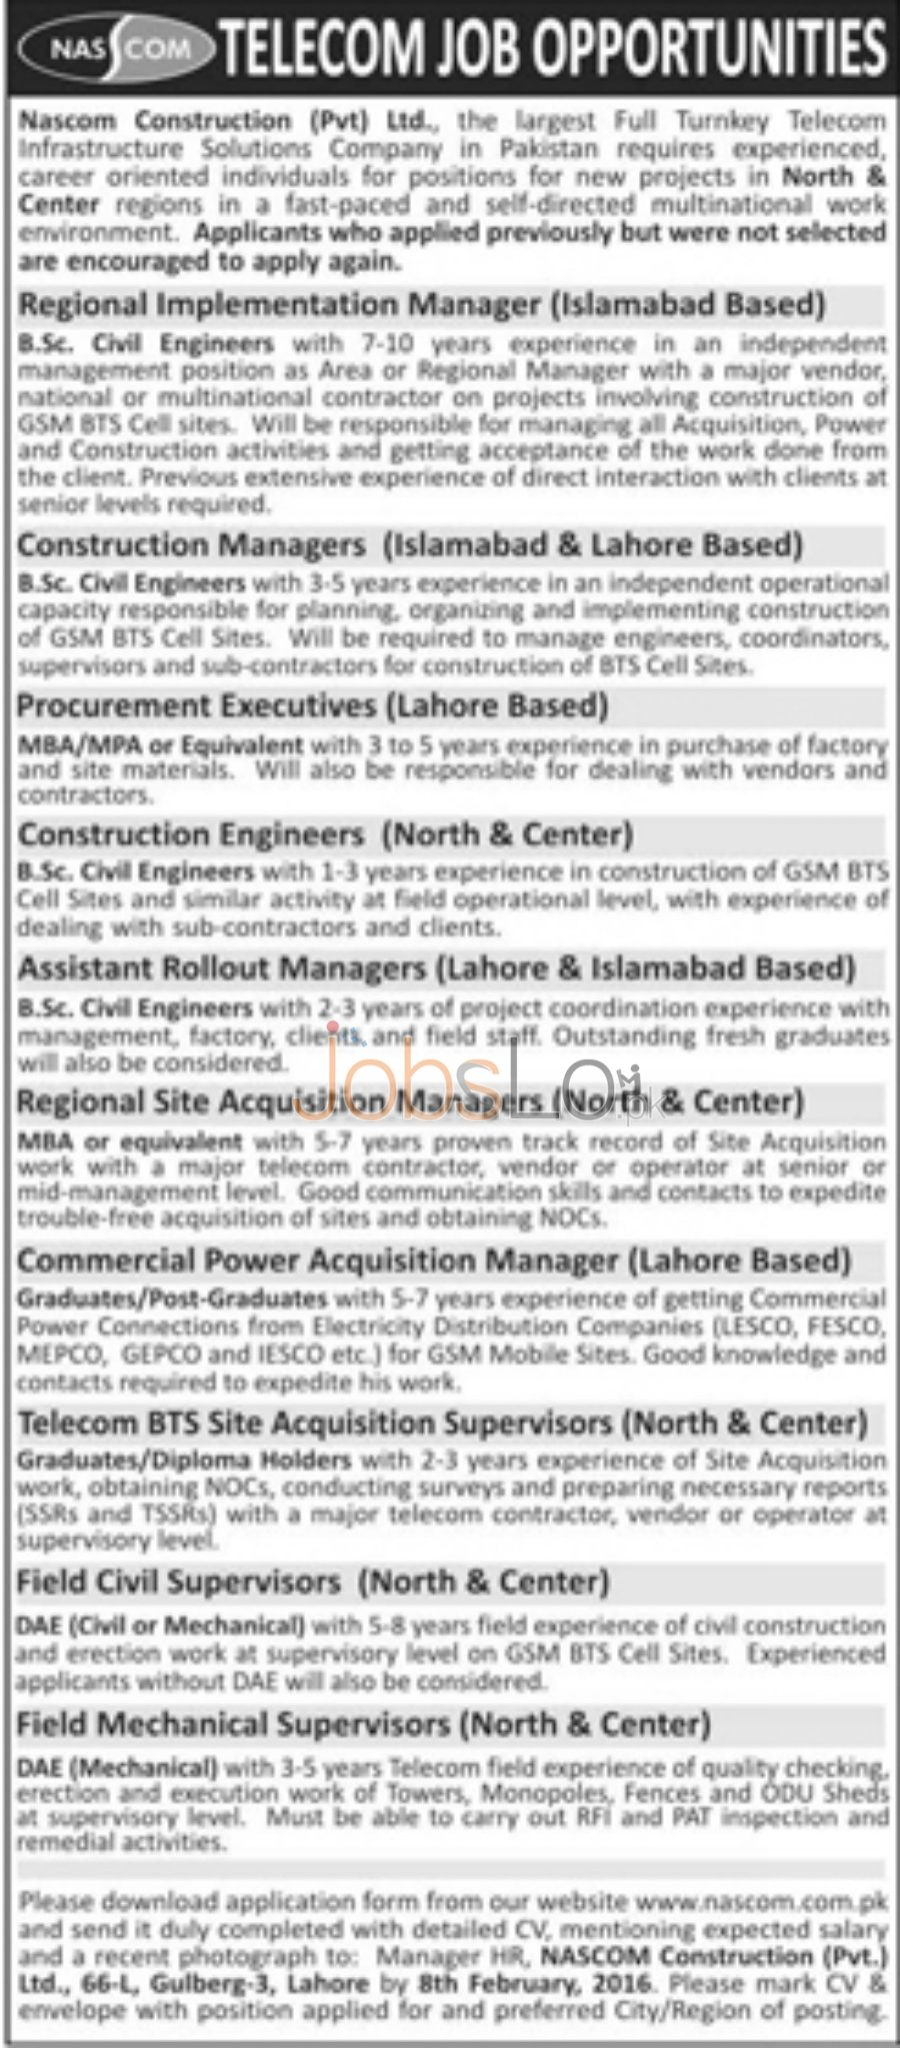 Nascom Construction Company Private Limited Company Jobs in Lahore & Islamabad 2016 Apply Online